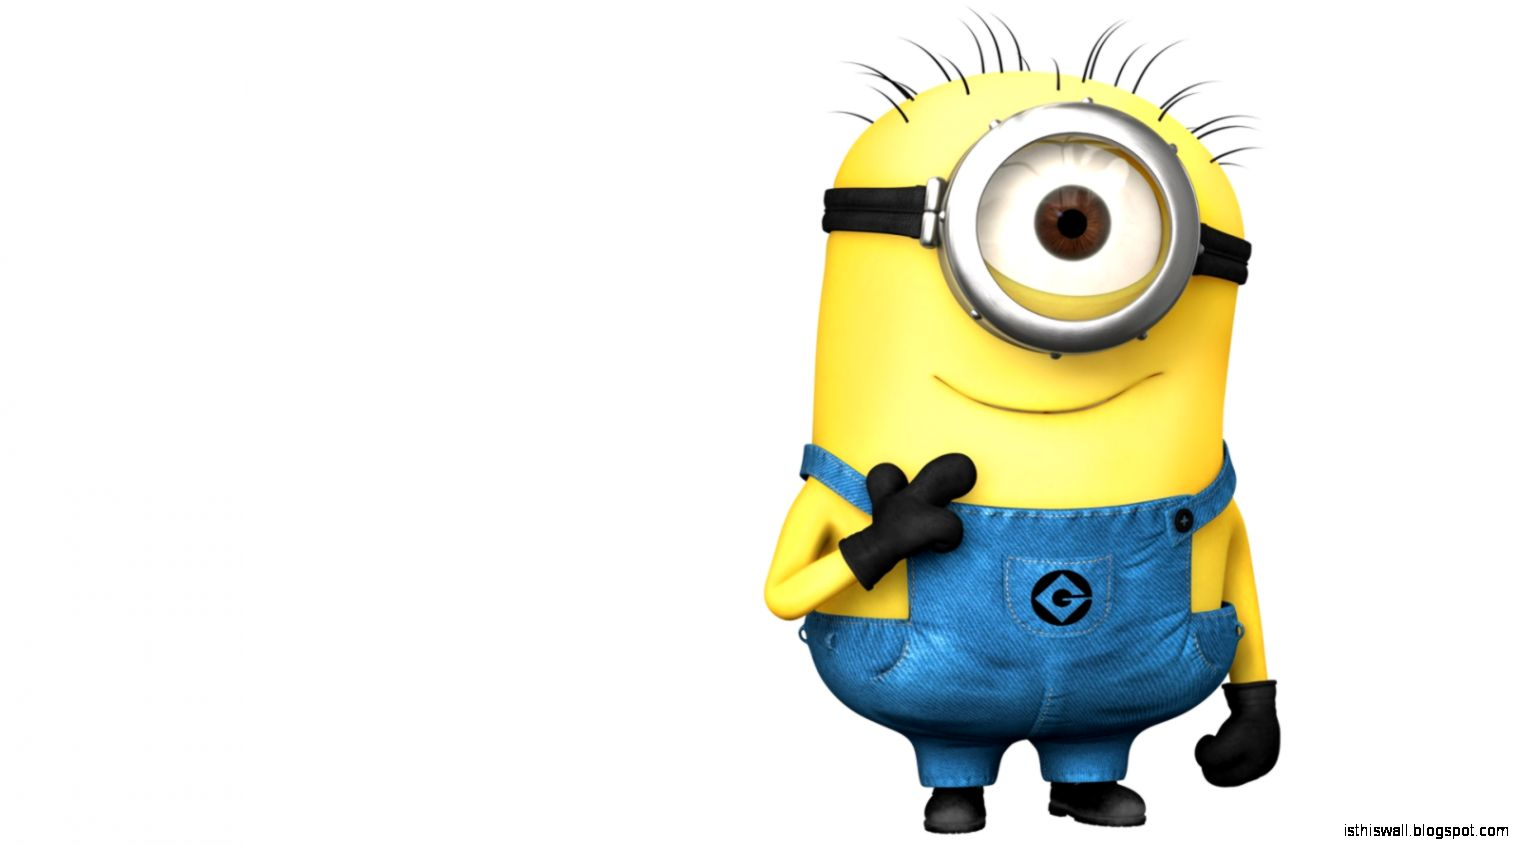 Stuart Minion Despicable Me 2 HD Wallpaper   iHD Wallpapers